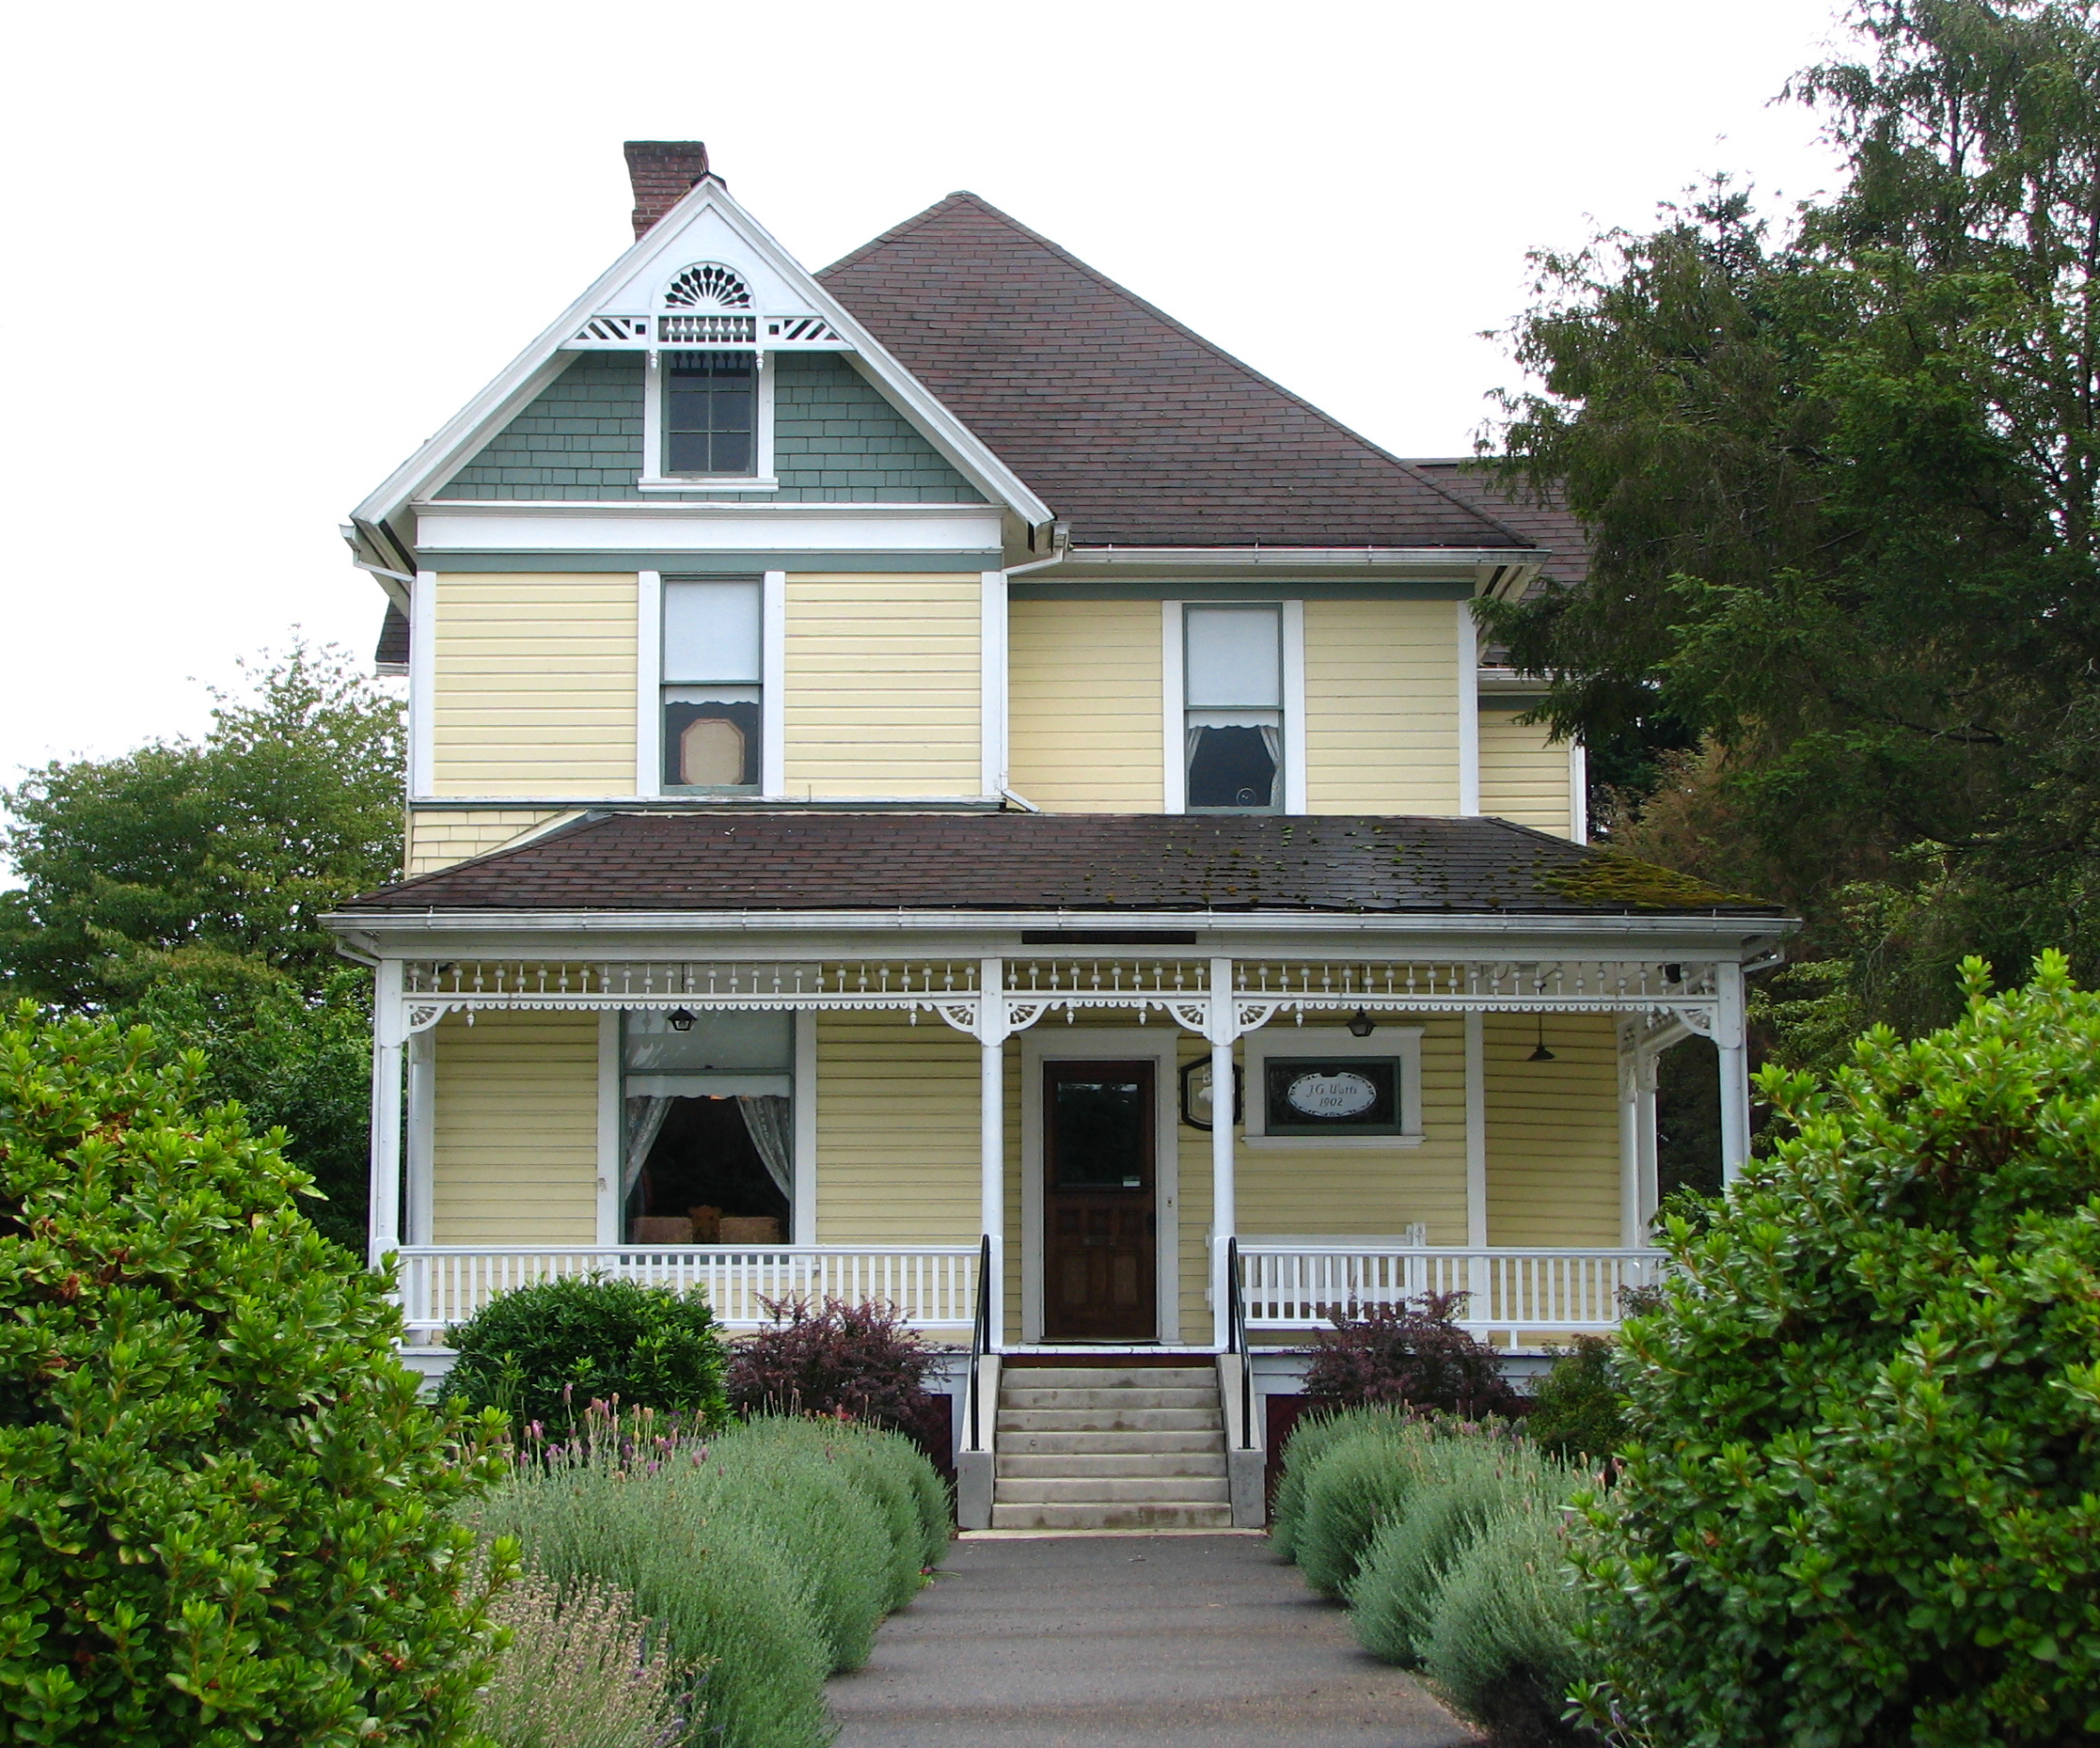 File watts house scappoose wikimedia commons for Building a home in oregon